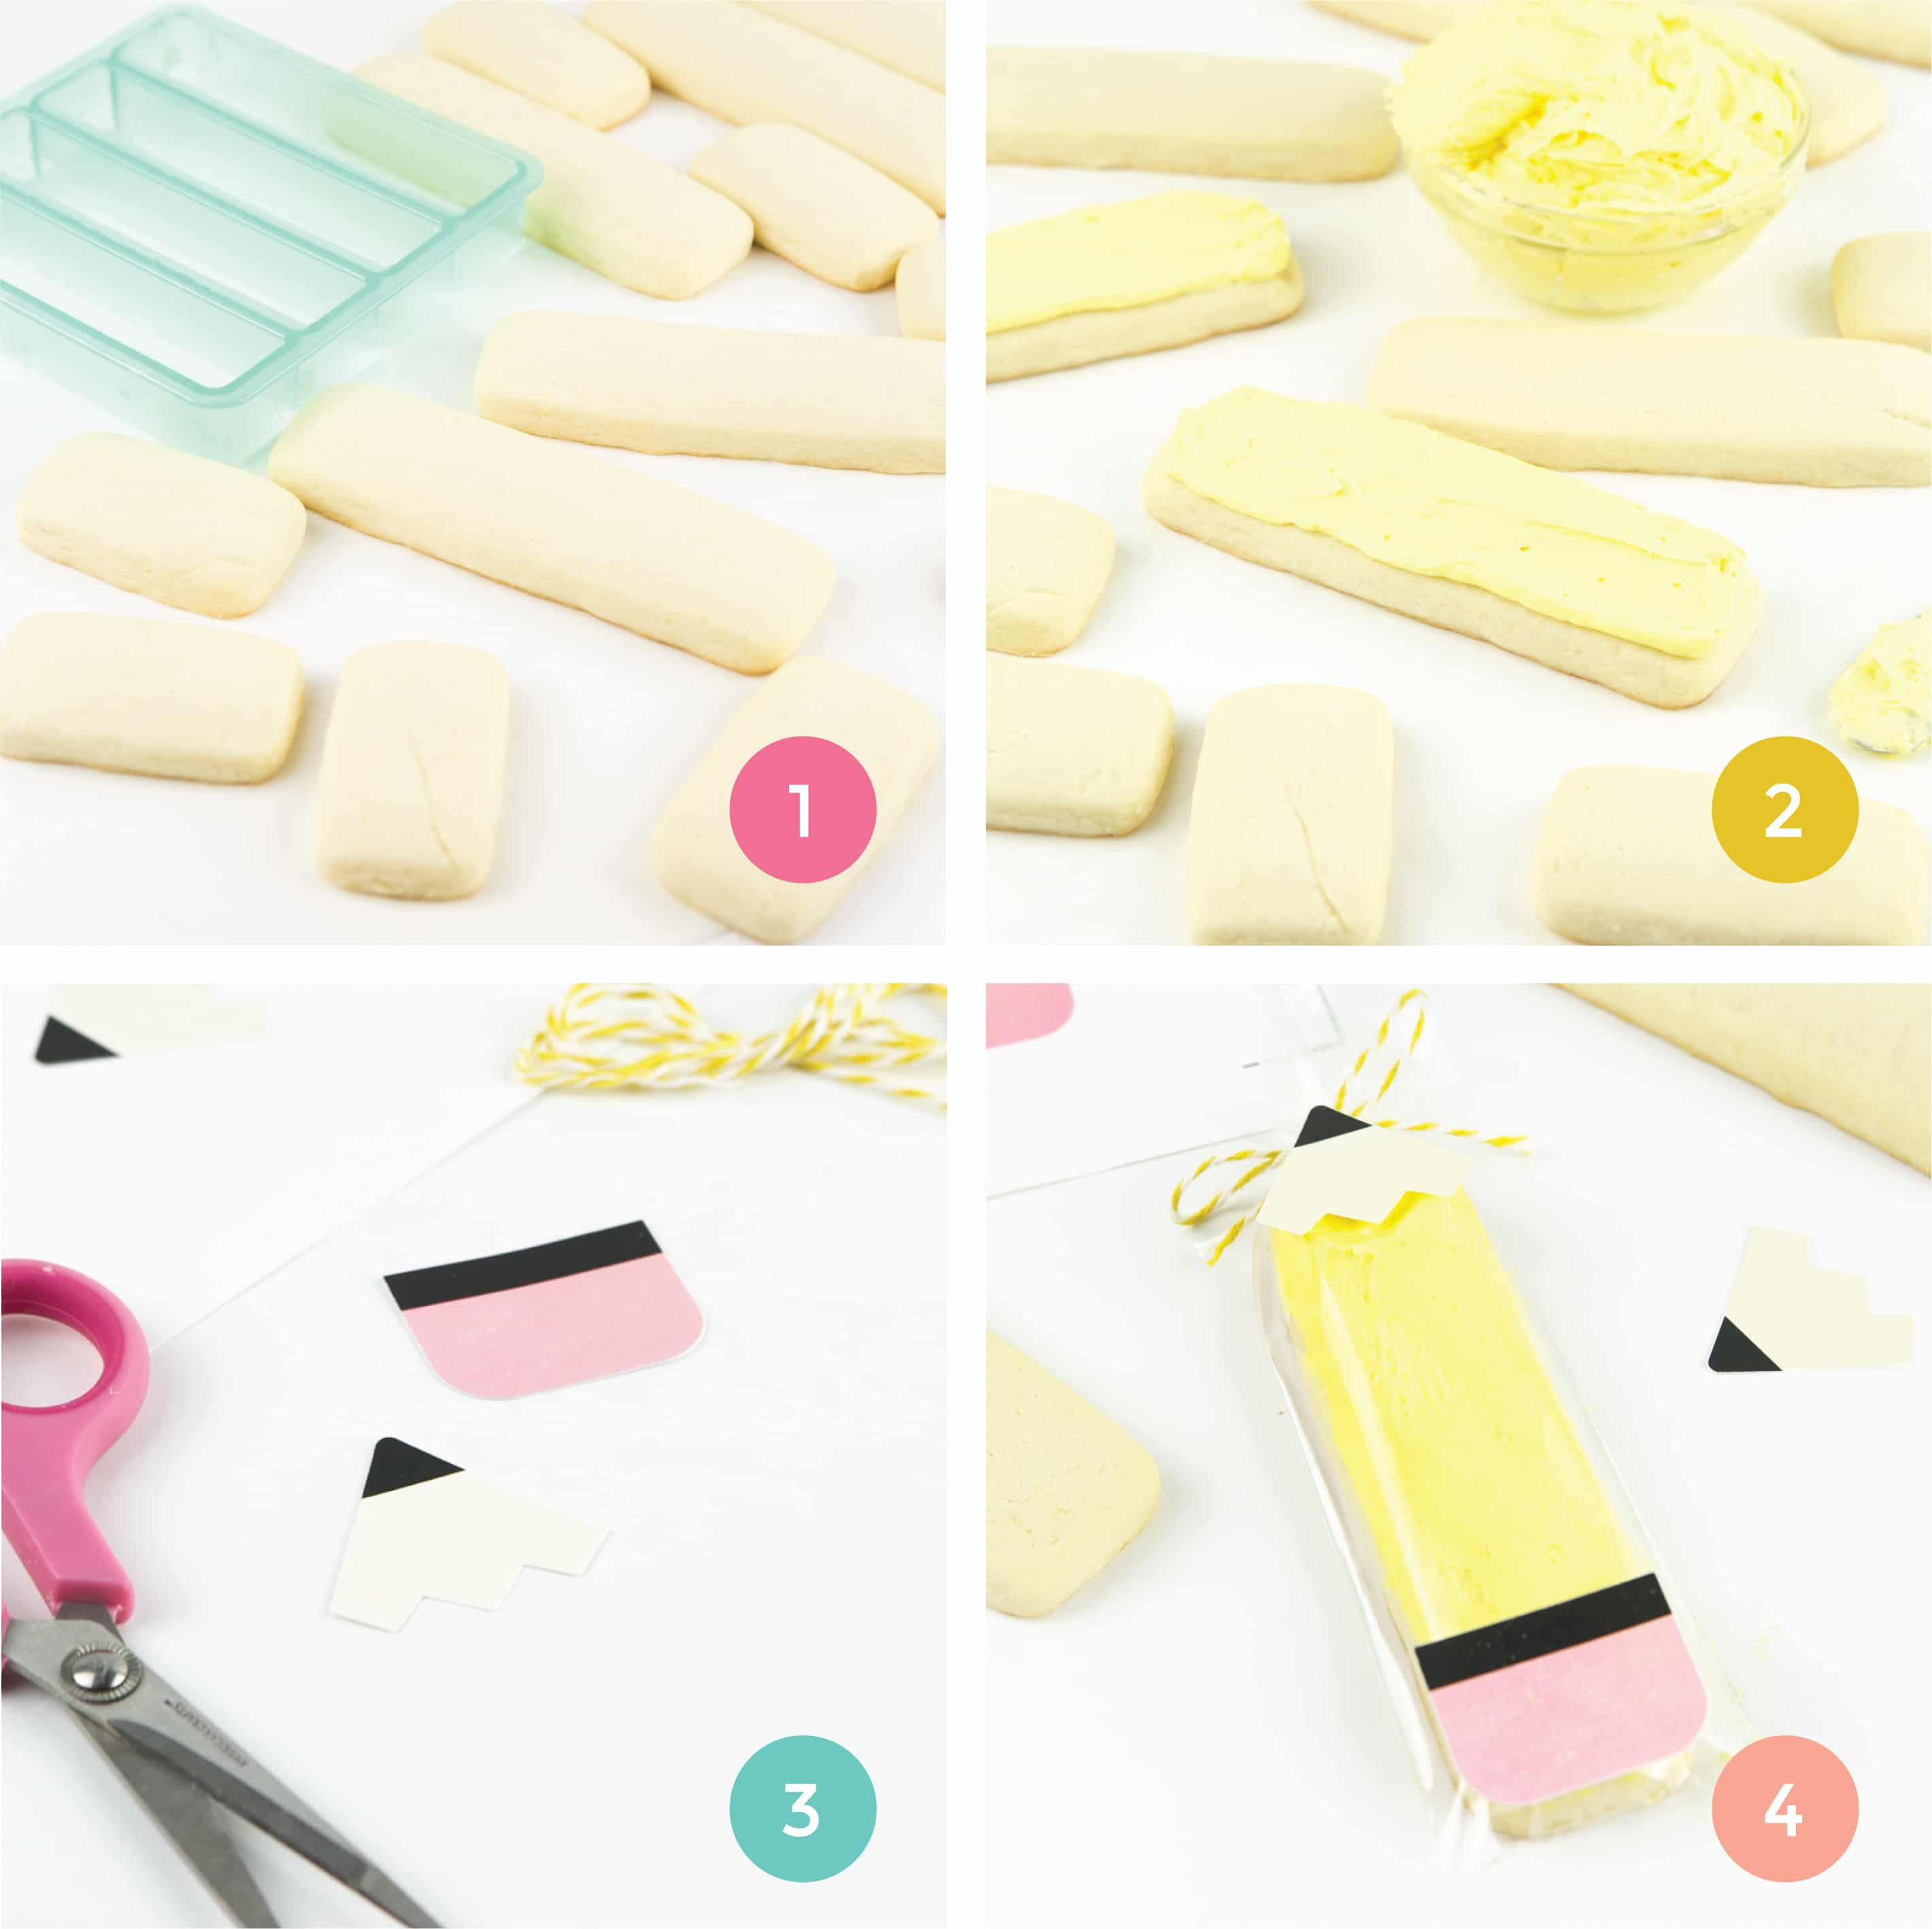 Steps on how to make pencil sugar cookies. Demonstrates how to cut out cookie sticks, how to frost with yellow icing, and how to cut pencil printables.